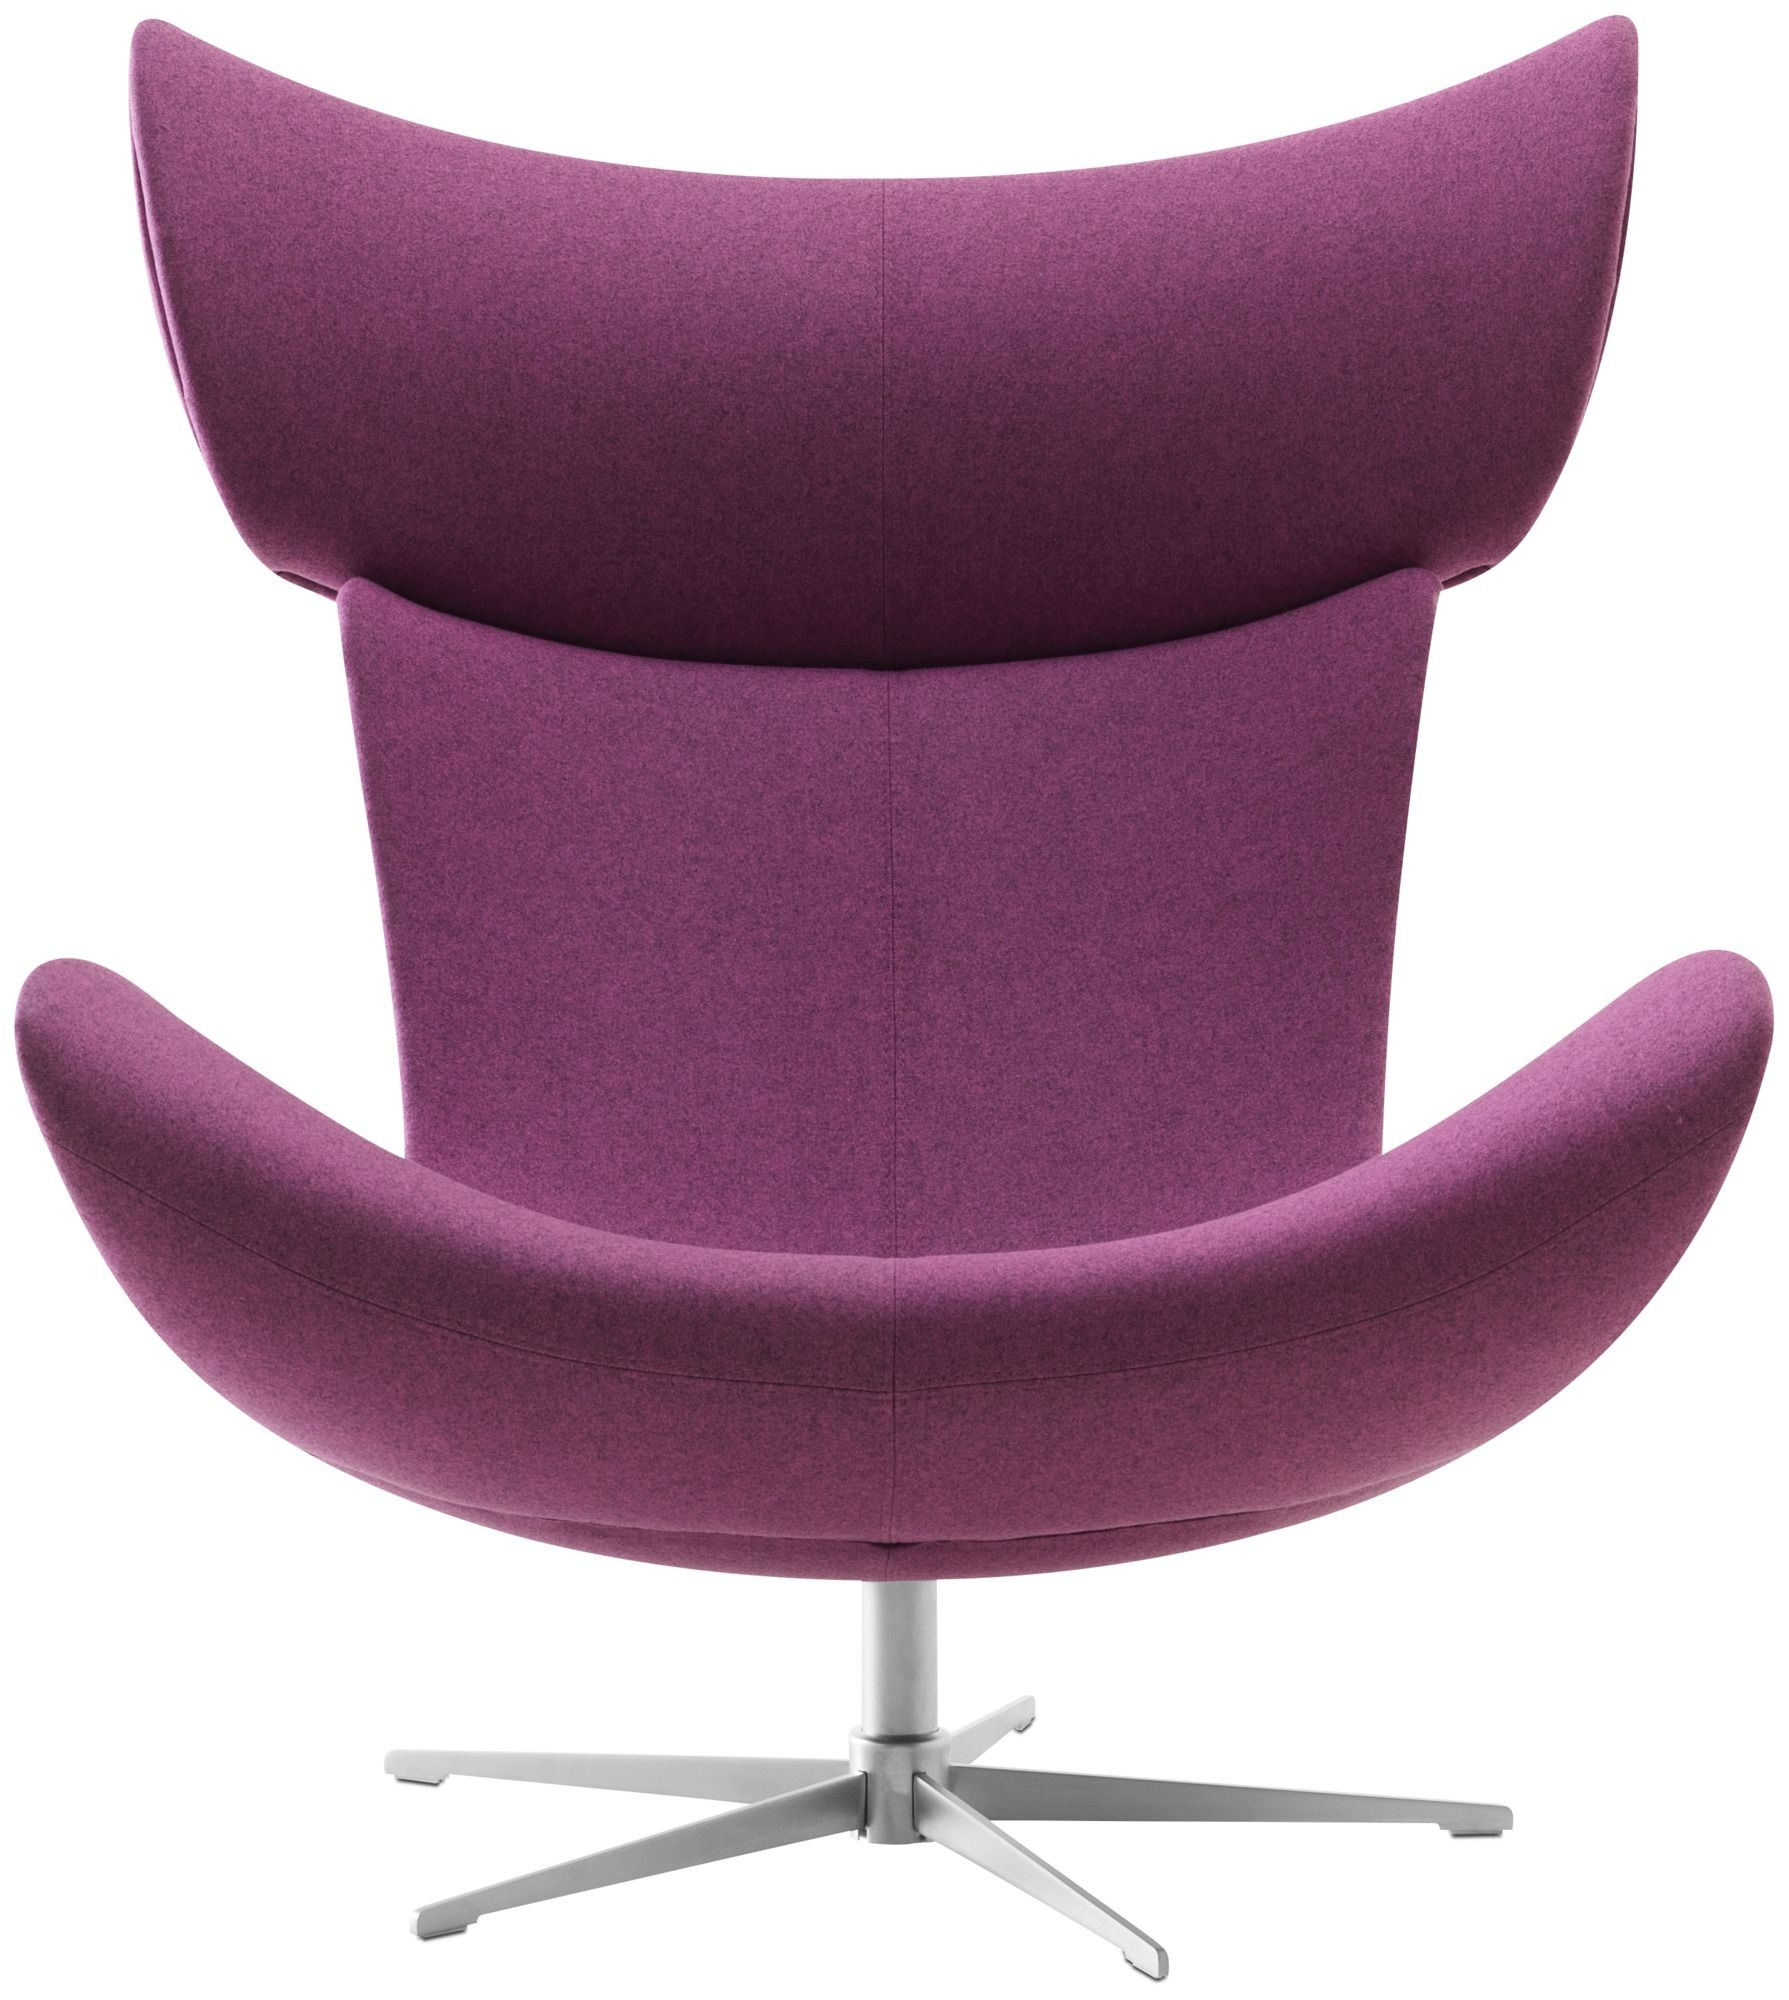 Modern Designer Armchairs, Leather Lounge Chairs   BoConcept Furniture  Sydney Australia